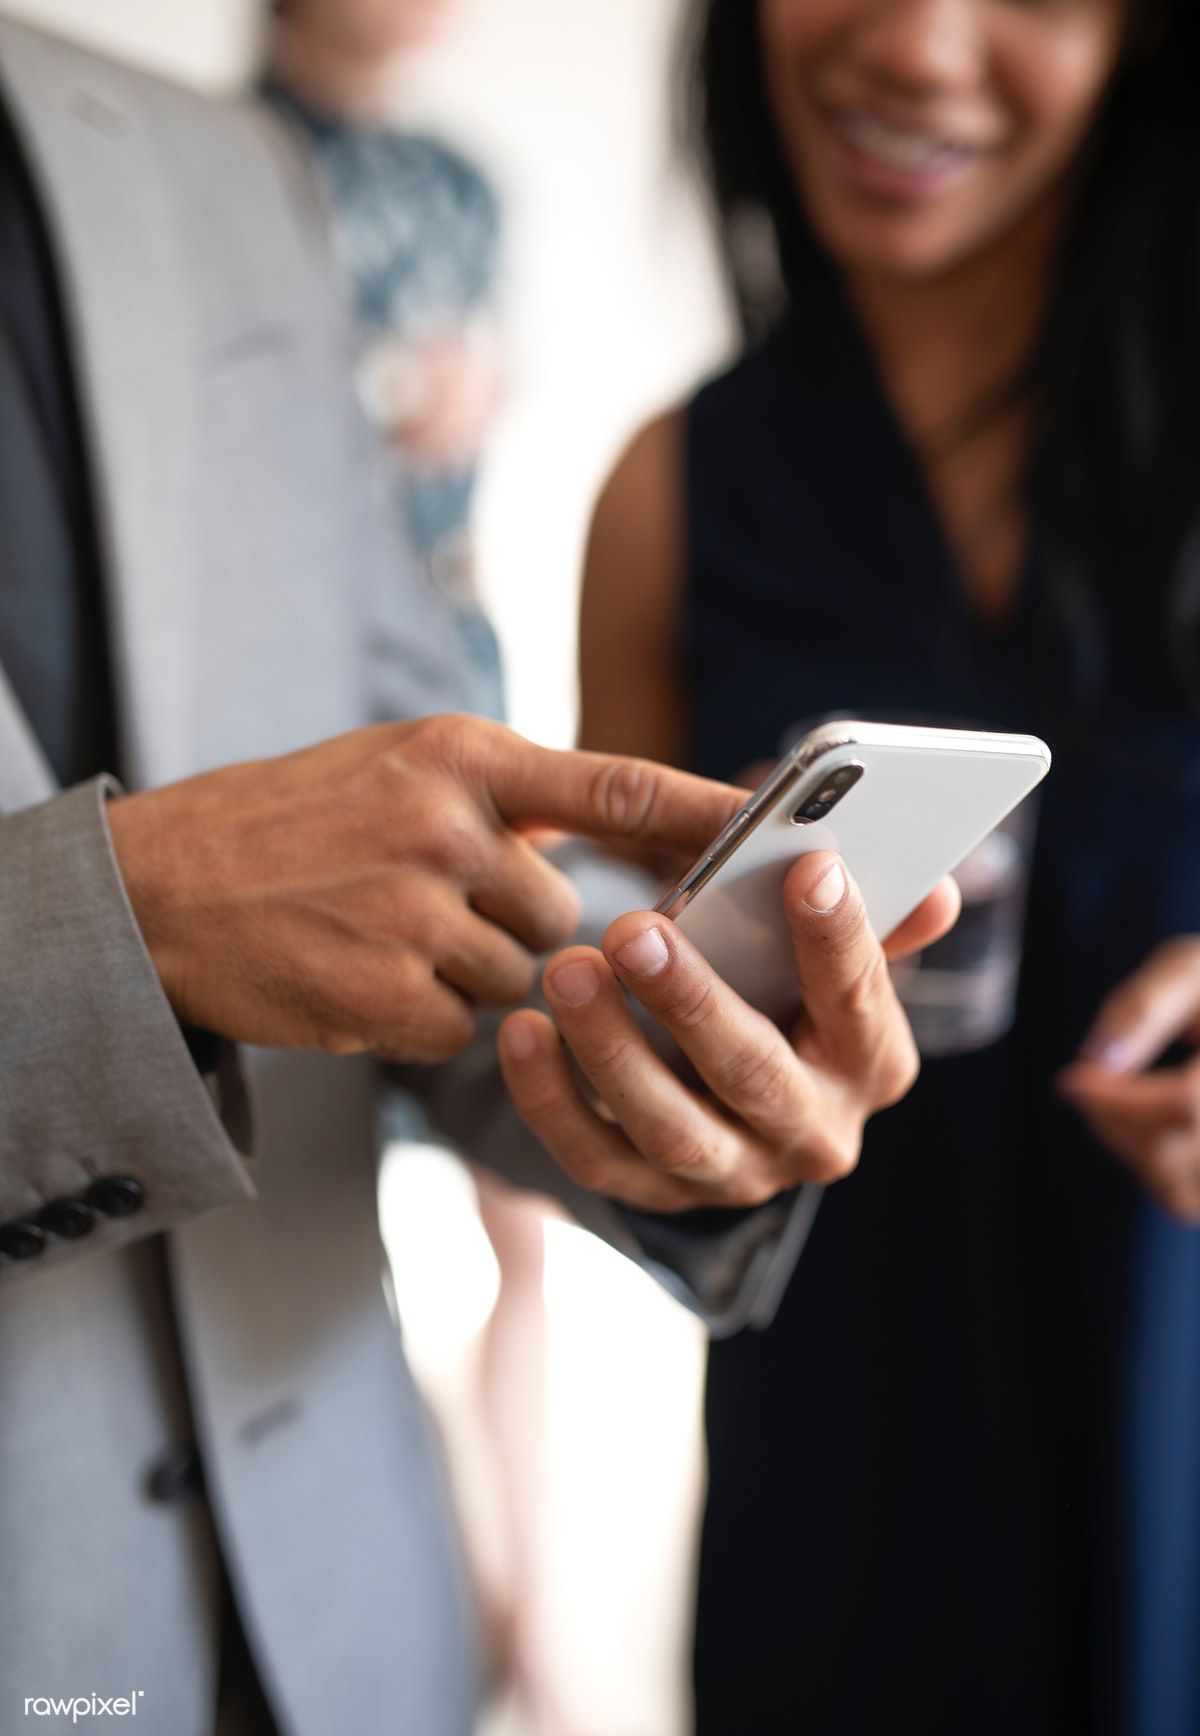 Business people using a mobile phone premium image by